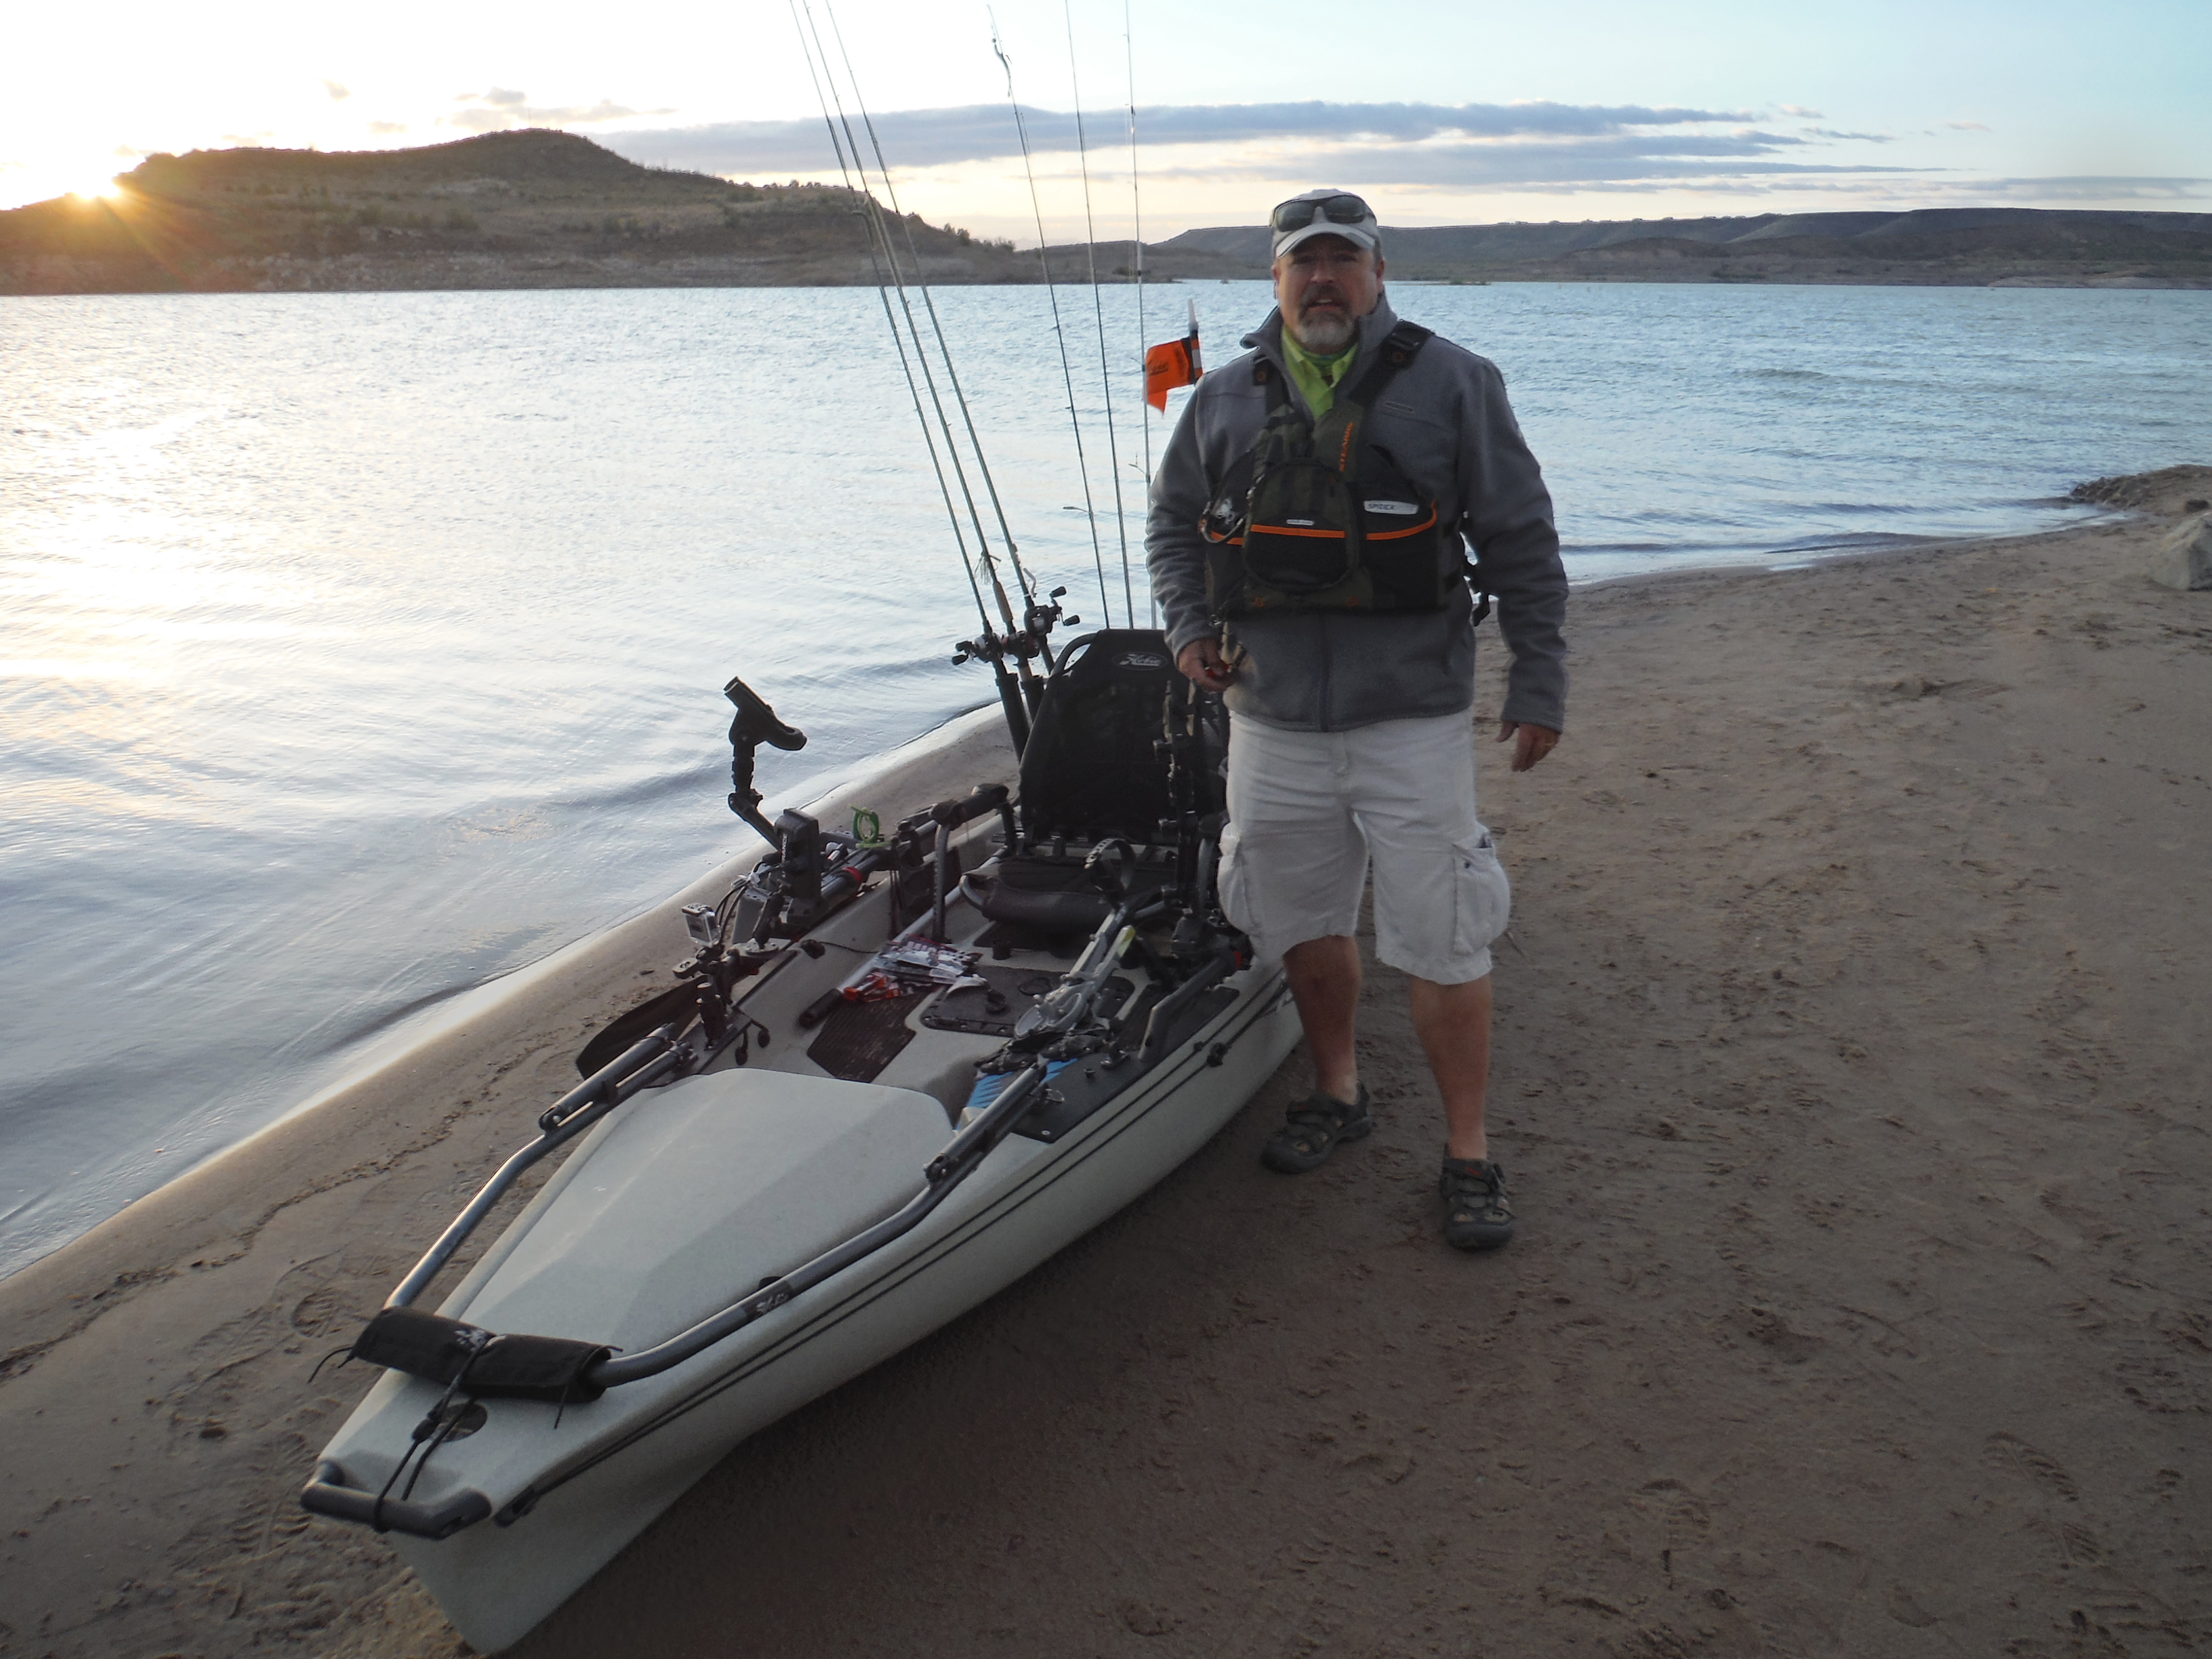 Elephant butte 2nd annual kayak tournament untamed sportsman for Kayak fishing tournaments